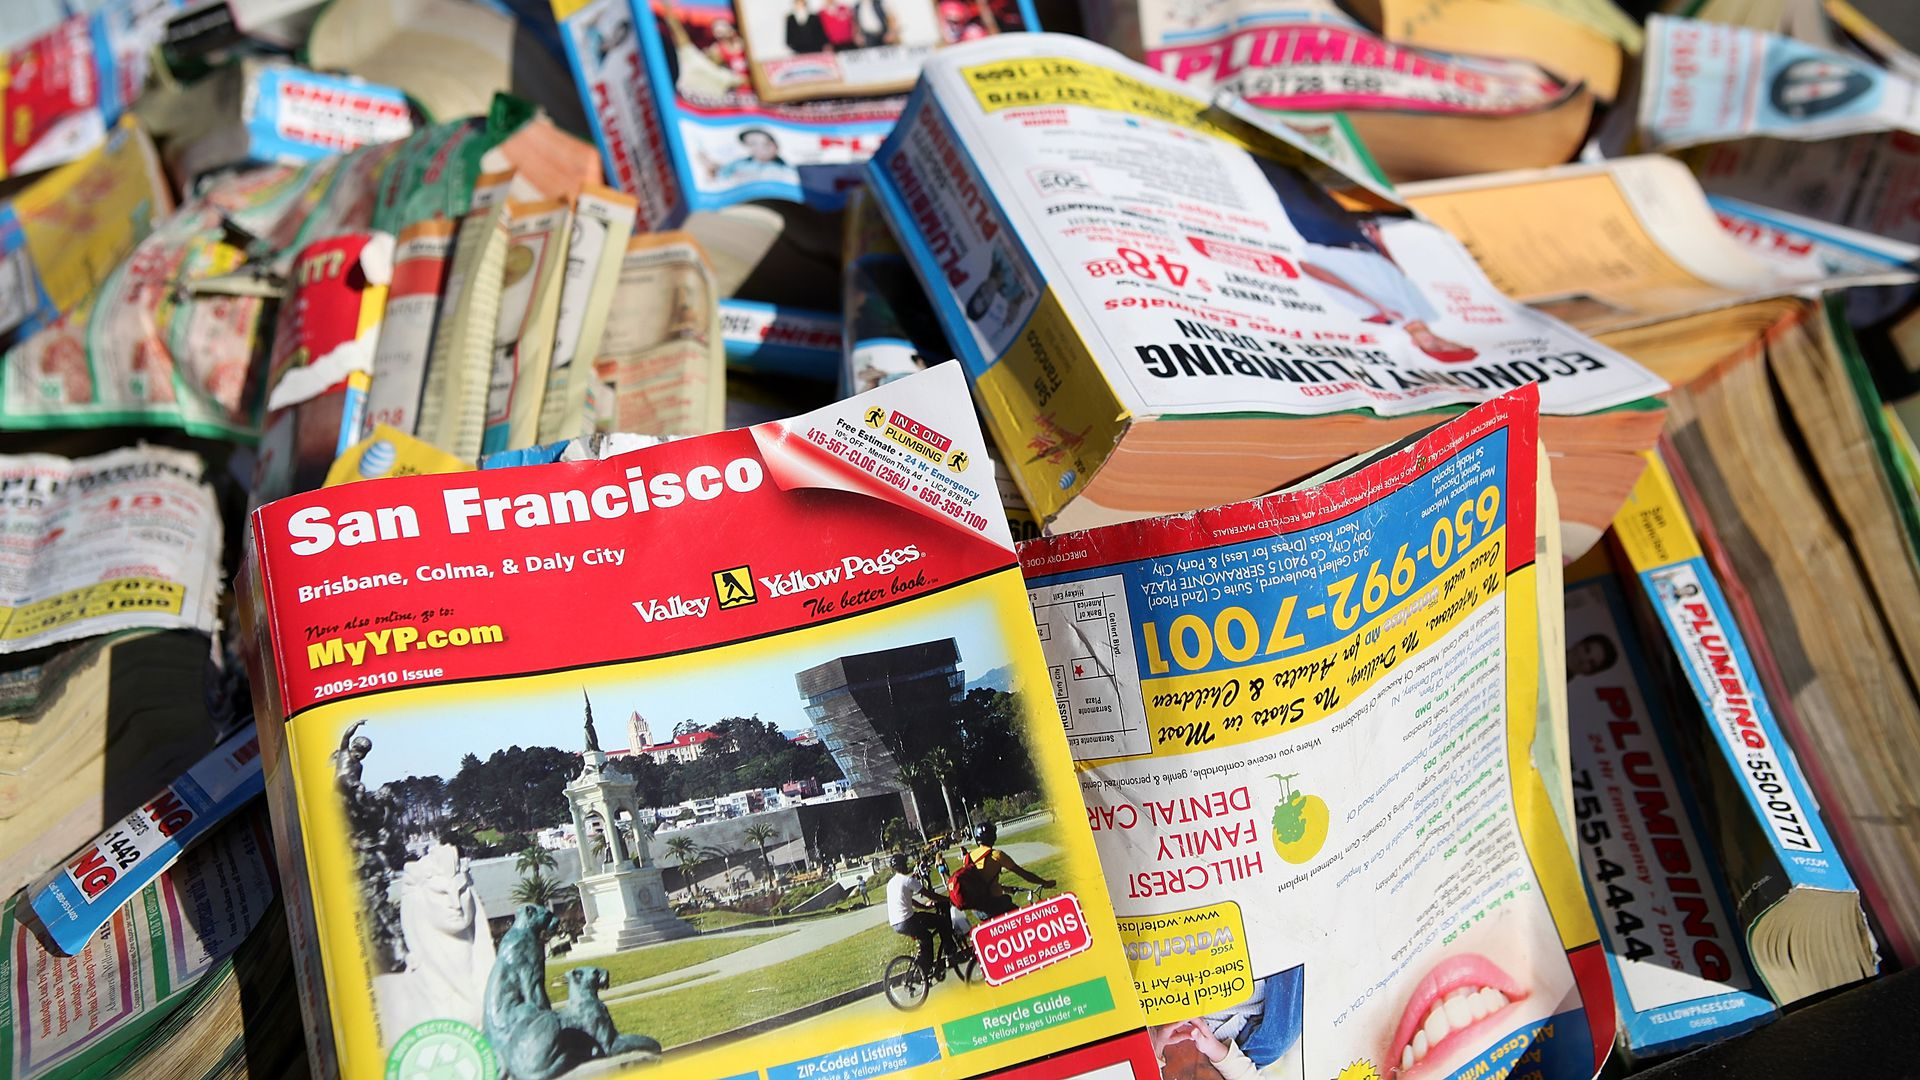 A stack of phonebooks